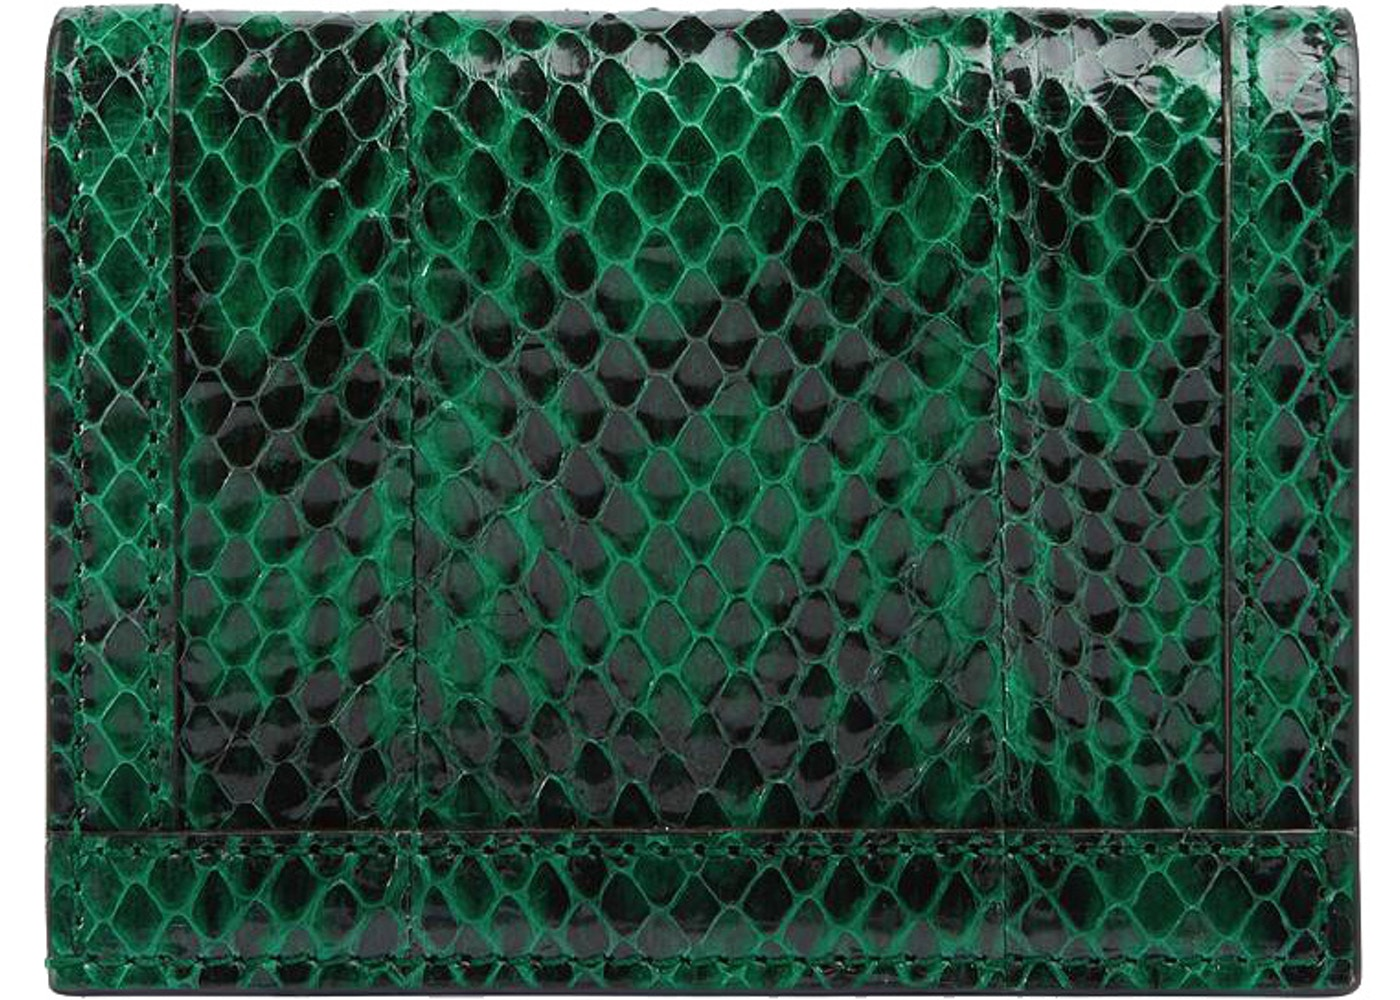 19b76bc899 Gucci Ophidia Card Case Snakeskin Emerald Green